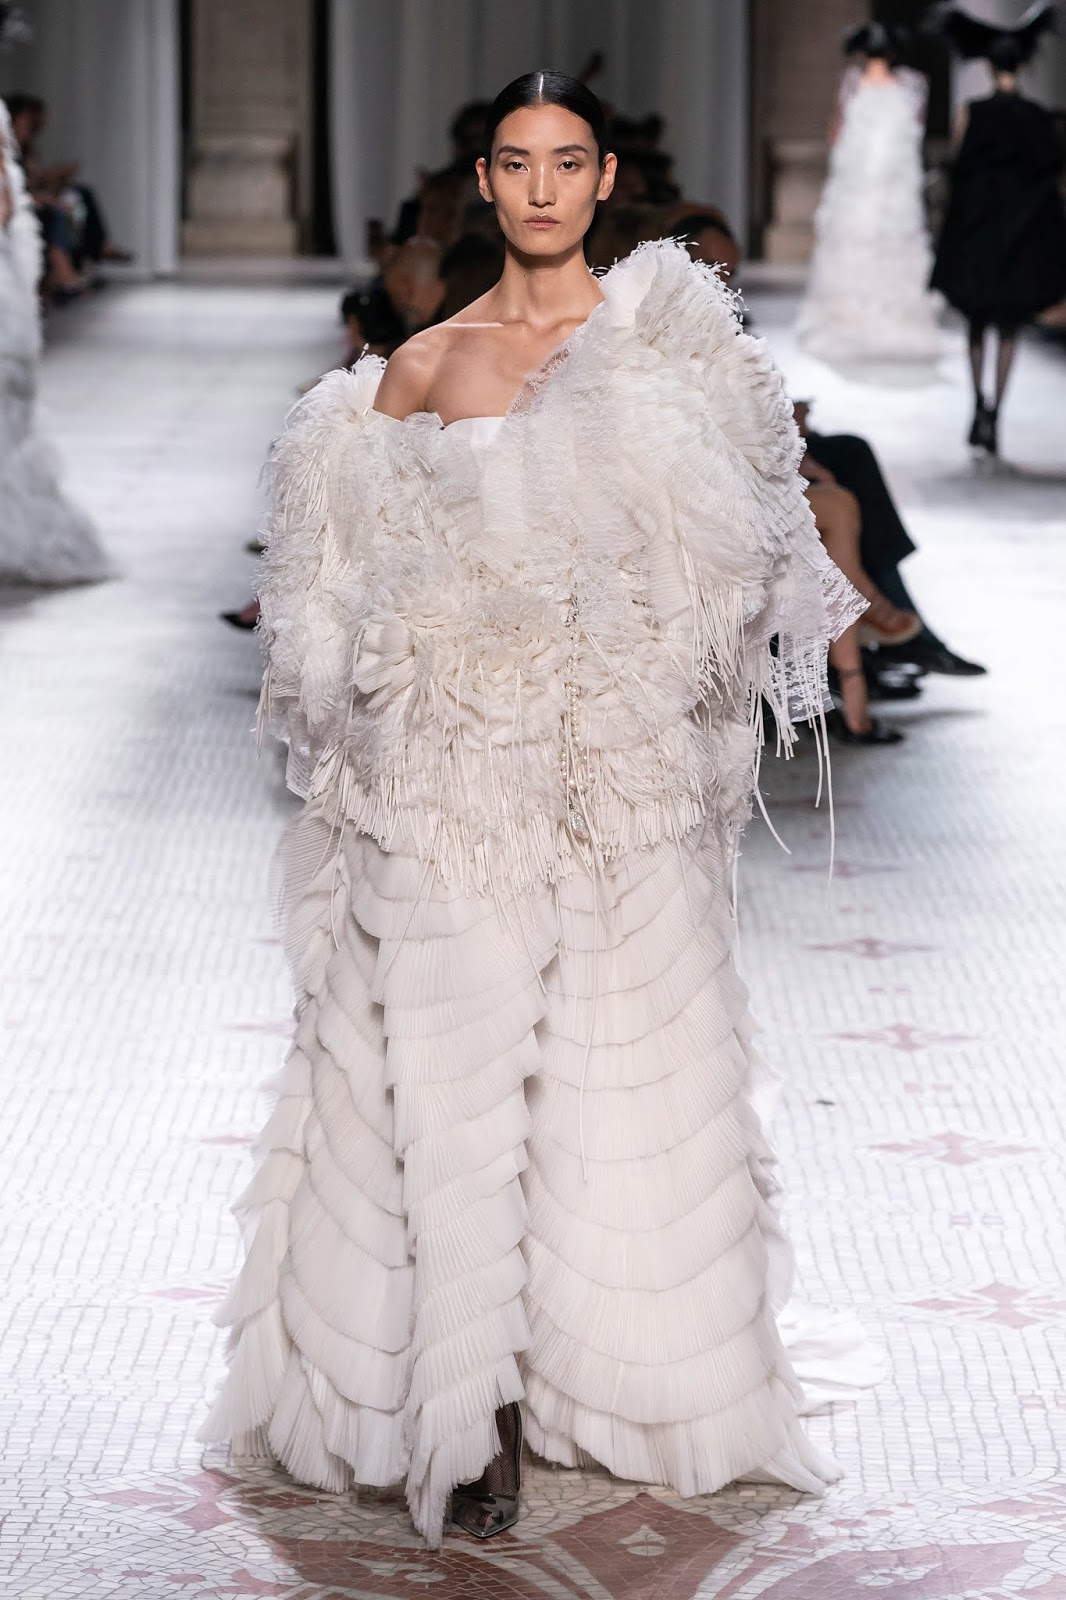 RUNWAY GORGEOUS: GIVENCHY